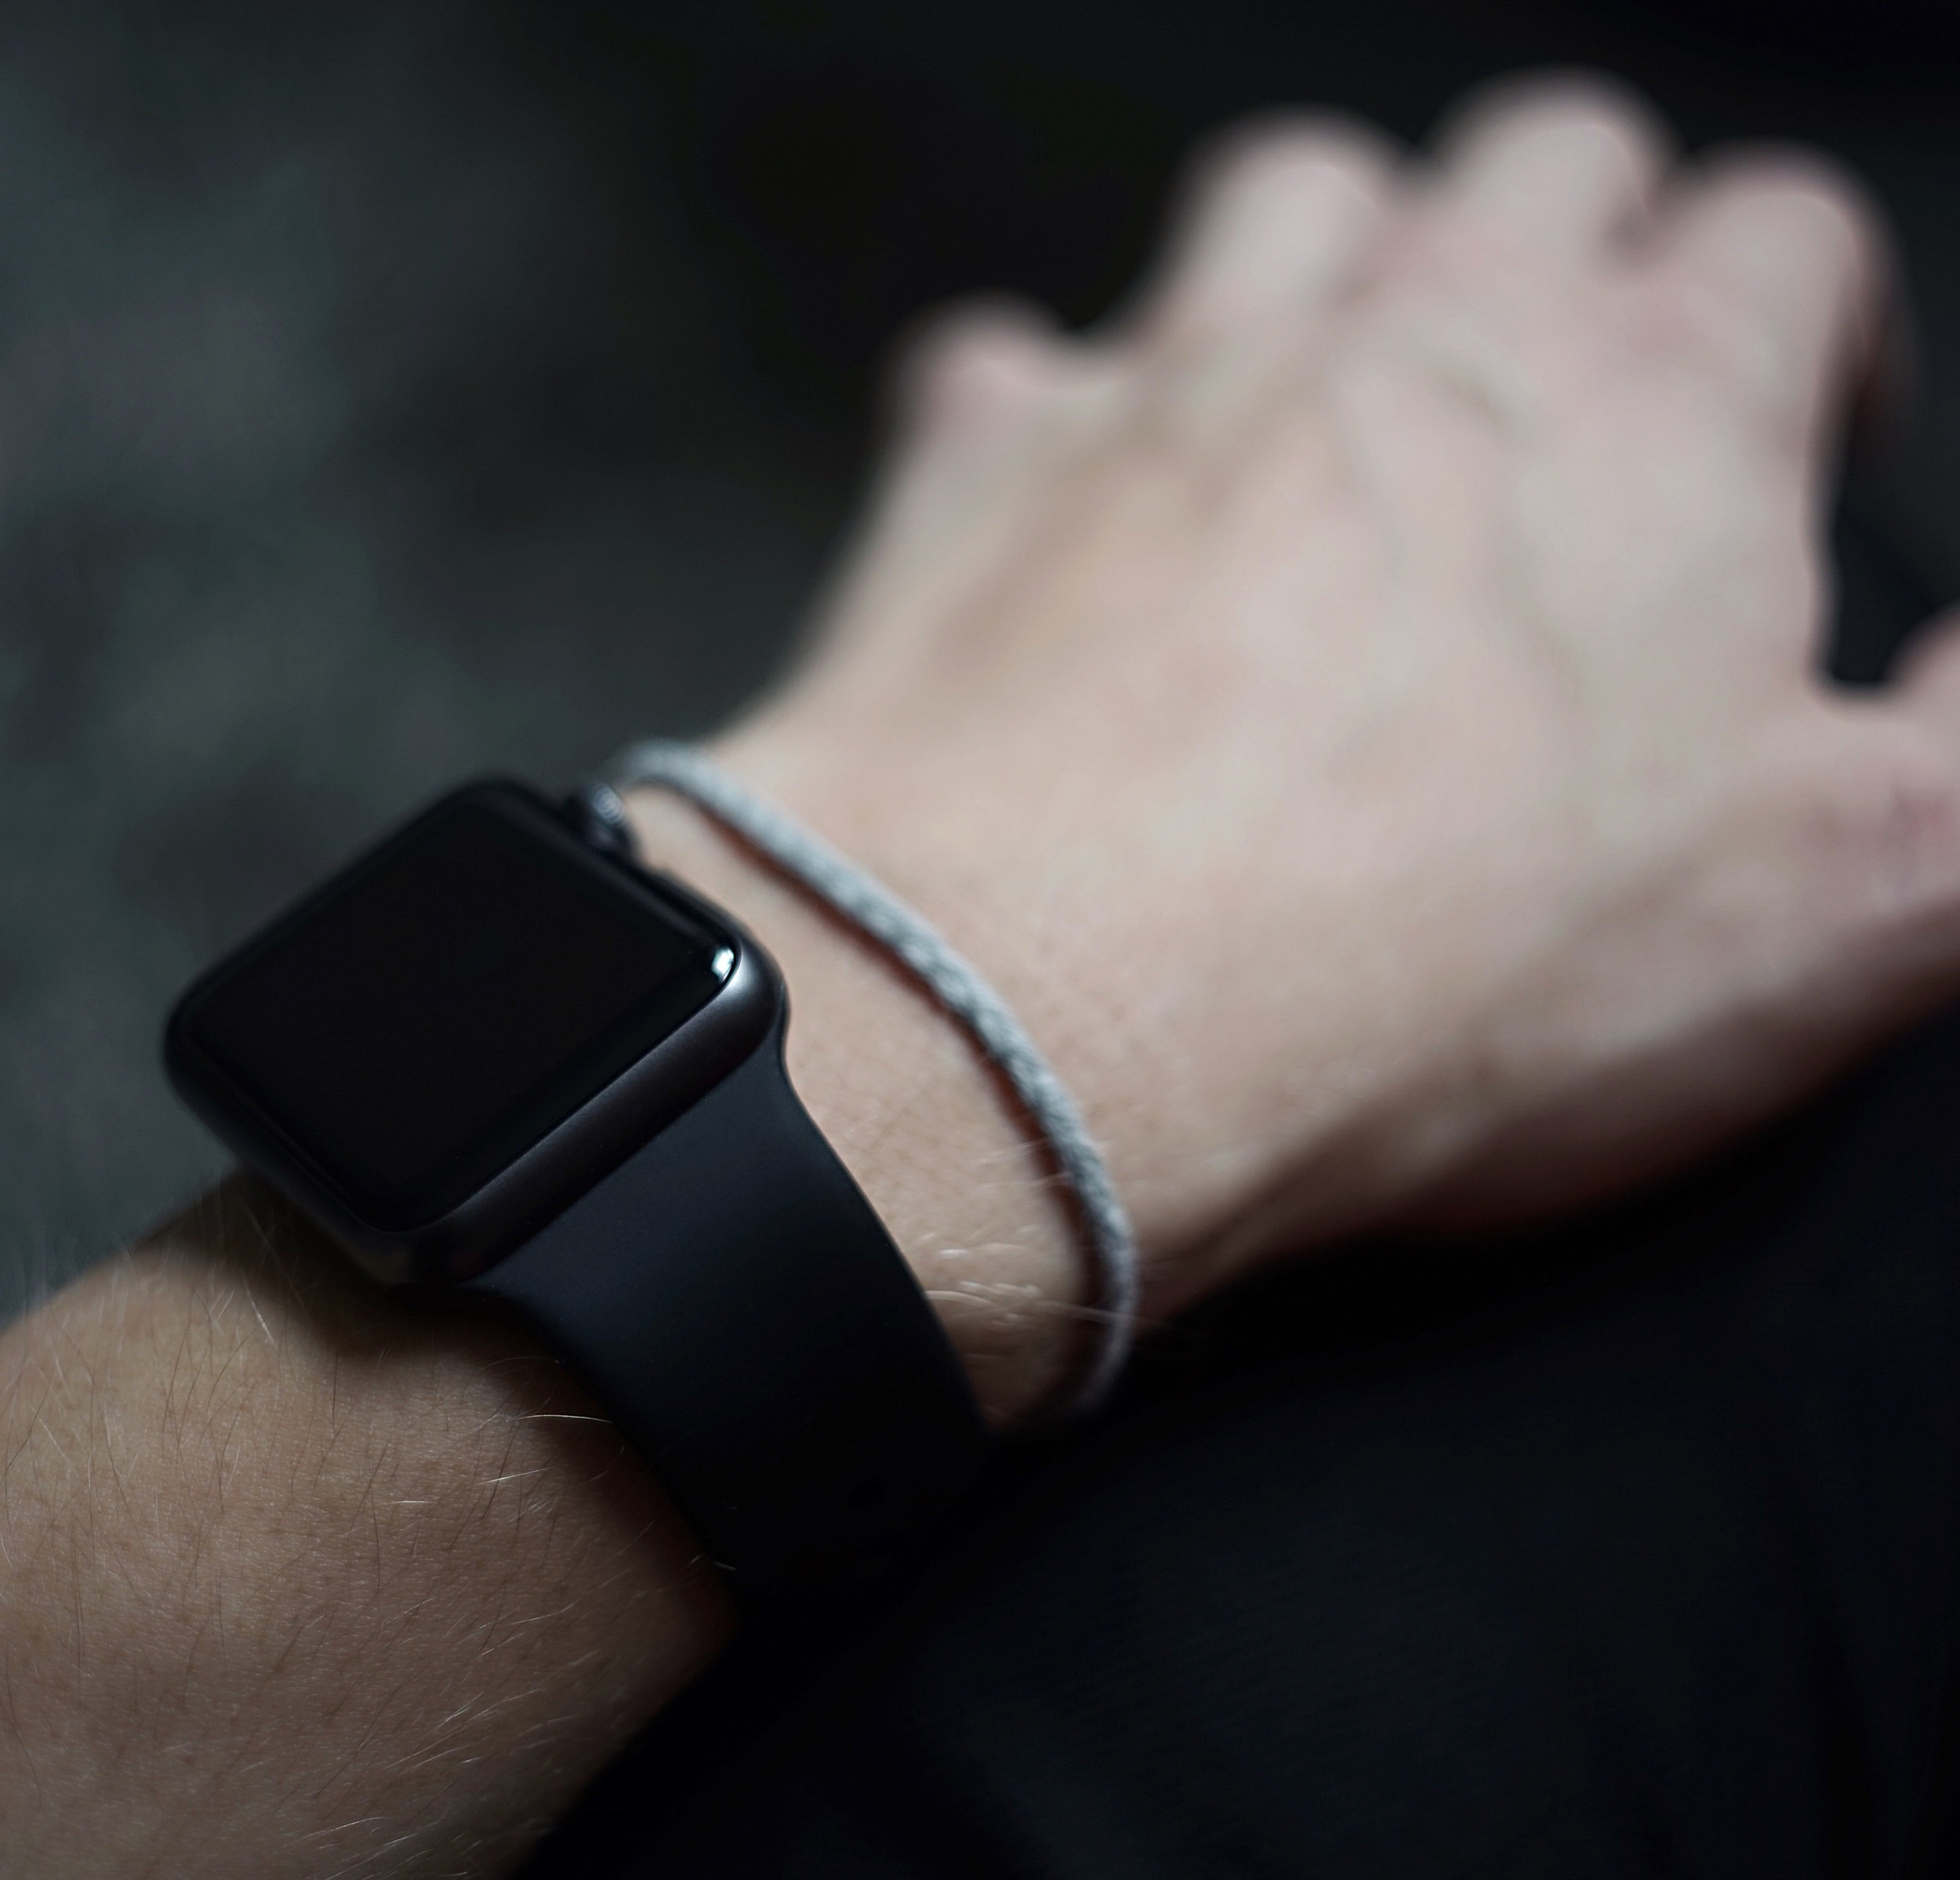 Heart Rate Monitor + Fitness Tracker (Apple Watch, $329 + $10-25 per month)